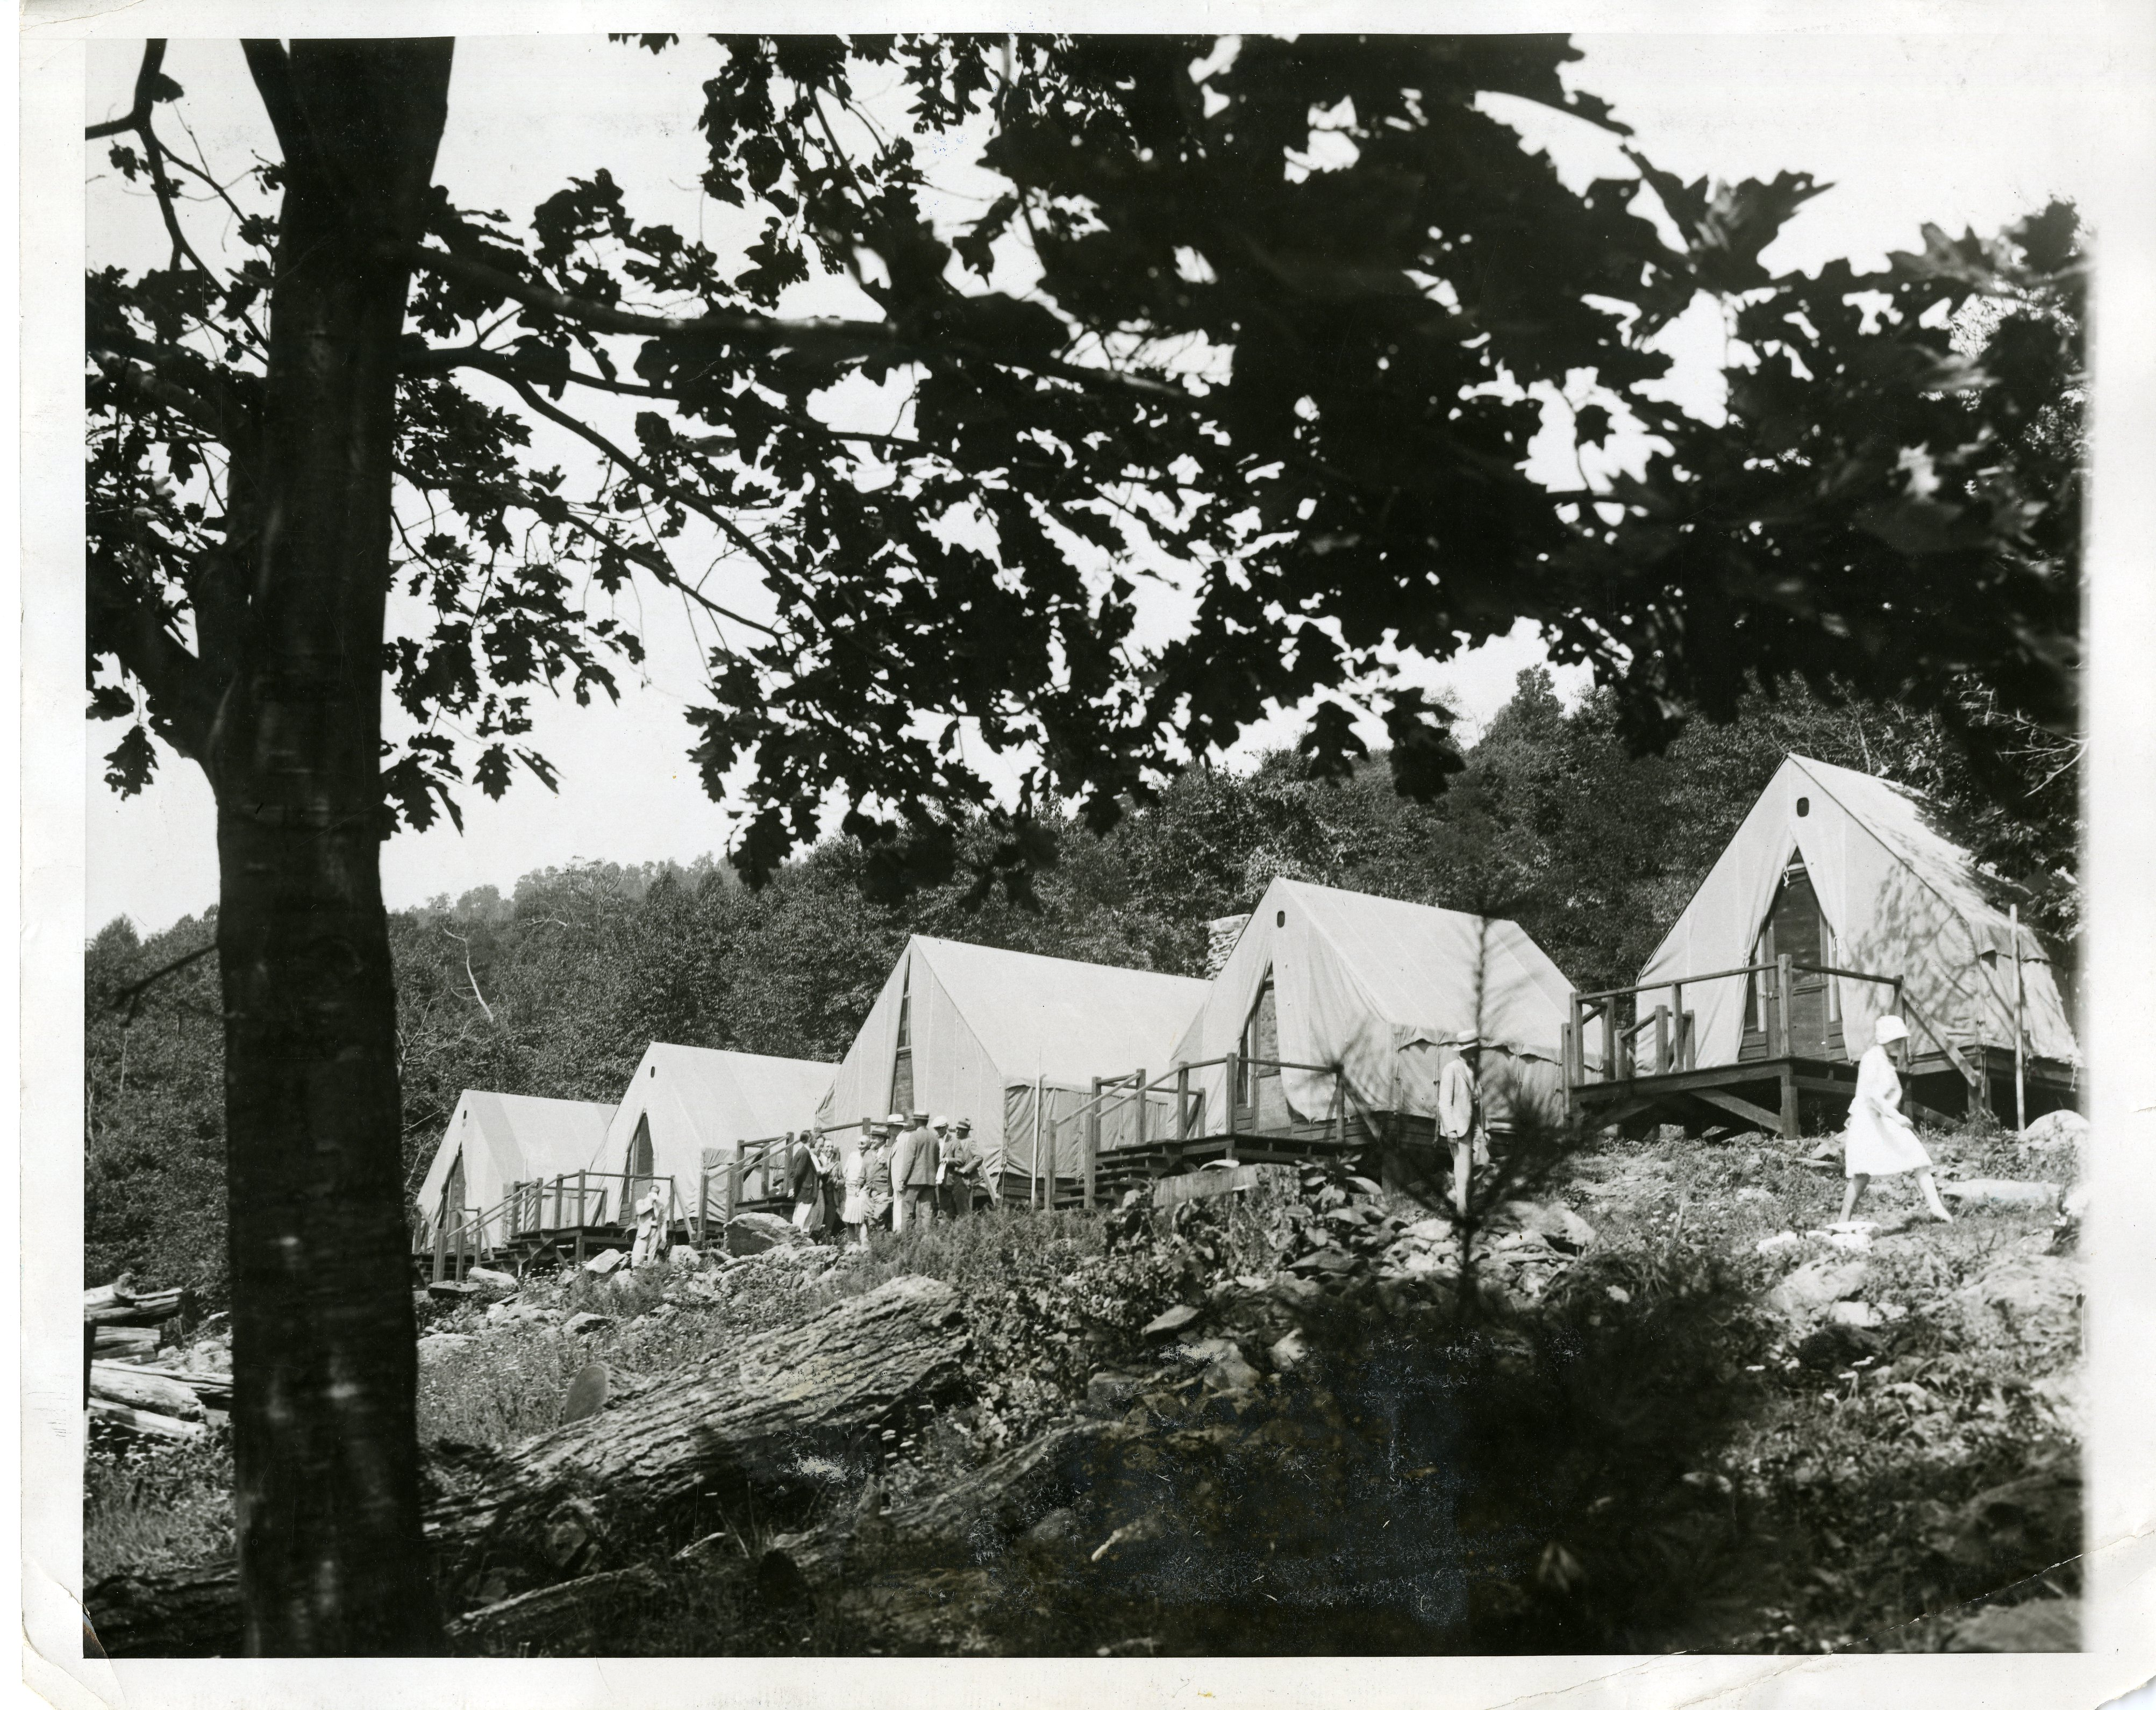 President Hoover's guest tents at Camp Rapidan, summer 1929.